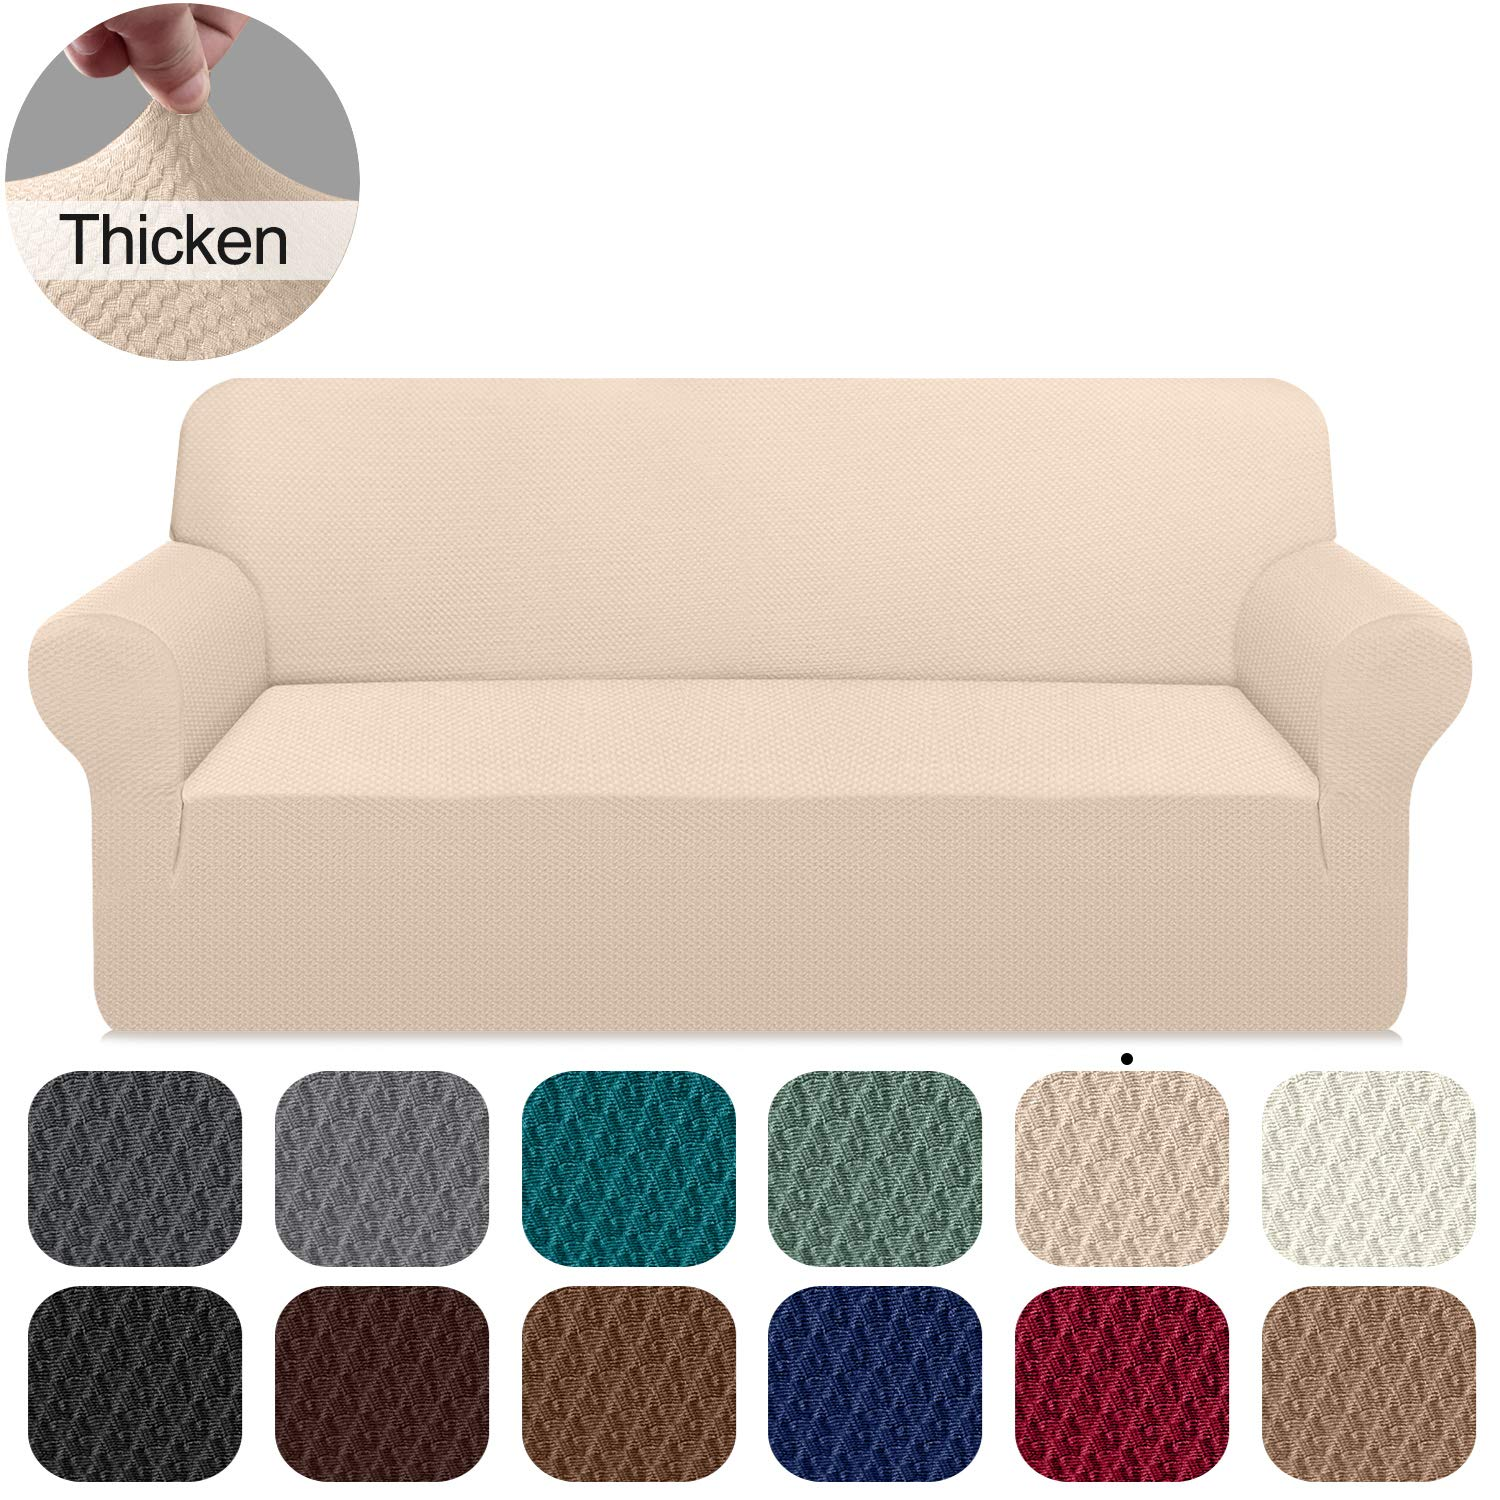 Sofa Cover Stretchable All Wrap Couch Slipcover Elastic Band Settee Protector